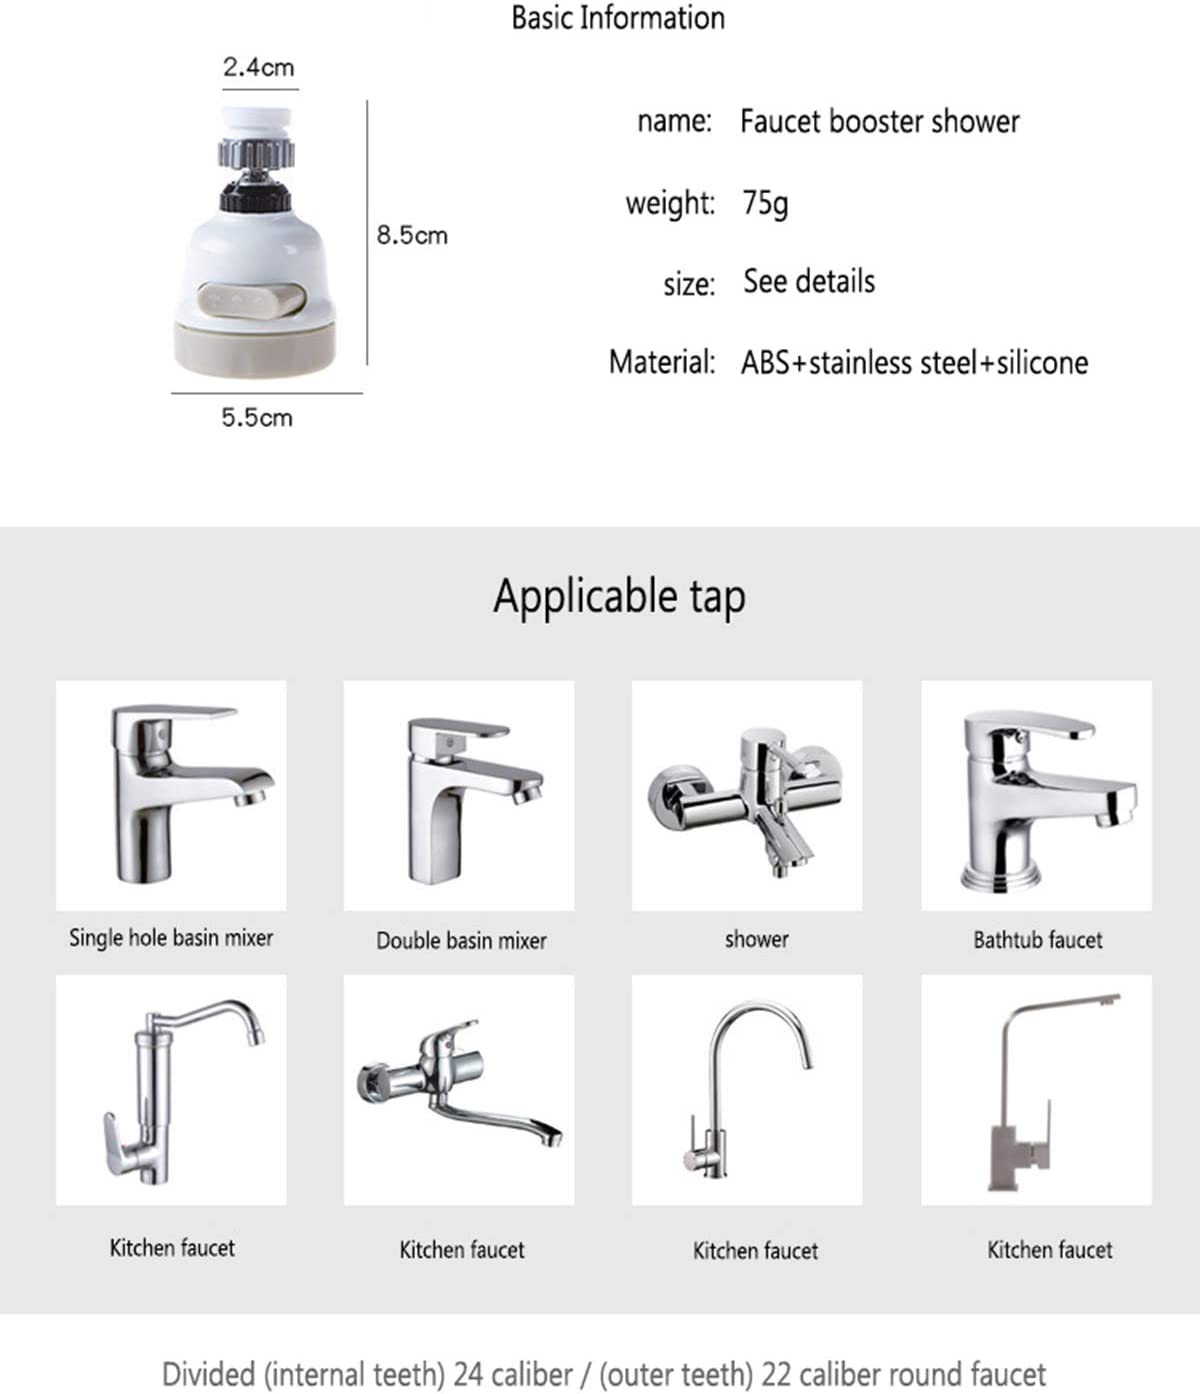 Water Faucet Filter,3 Modes Position Adjustable Sink Faucet Sprayer Head,High Water Flow Tap Water Head for Home Kitchen Bathroom,Booster Shower Water Saver